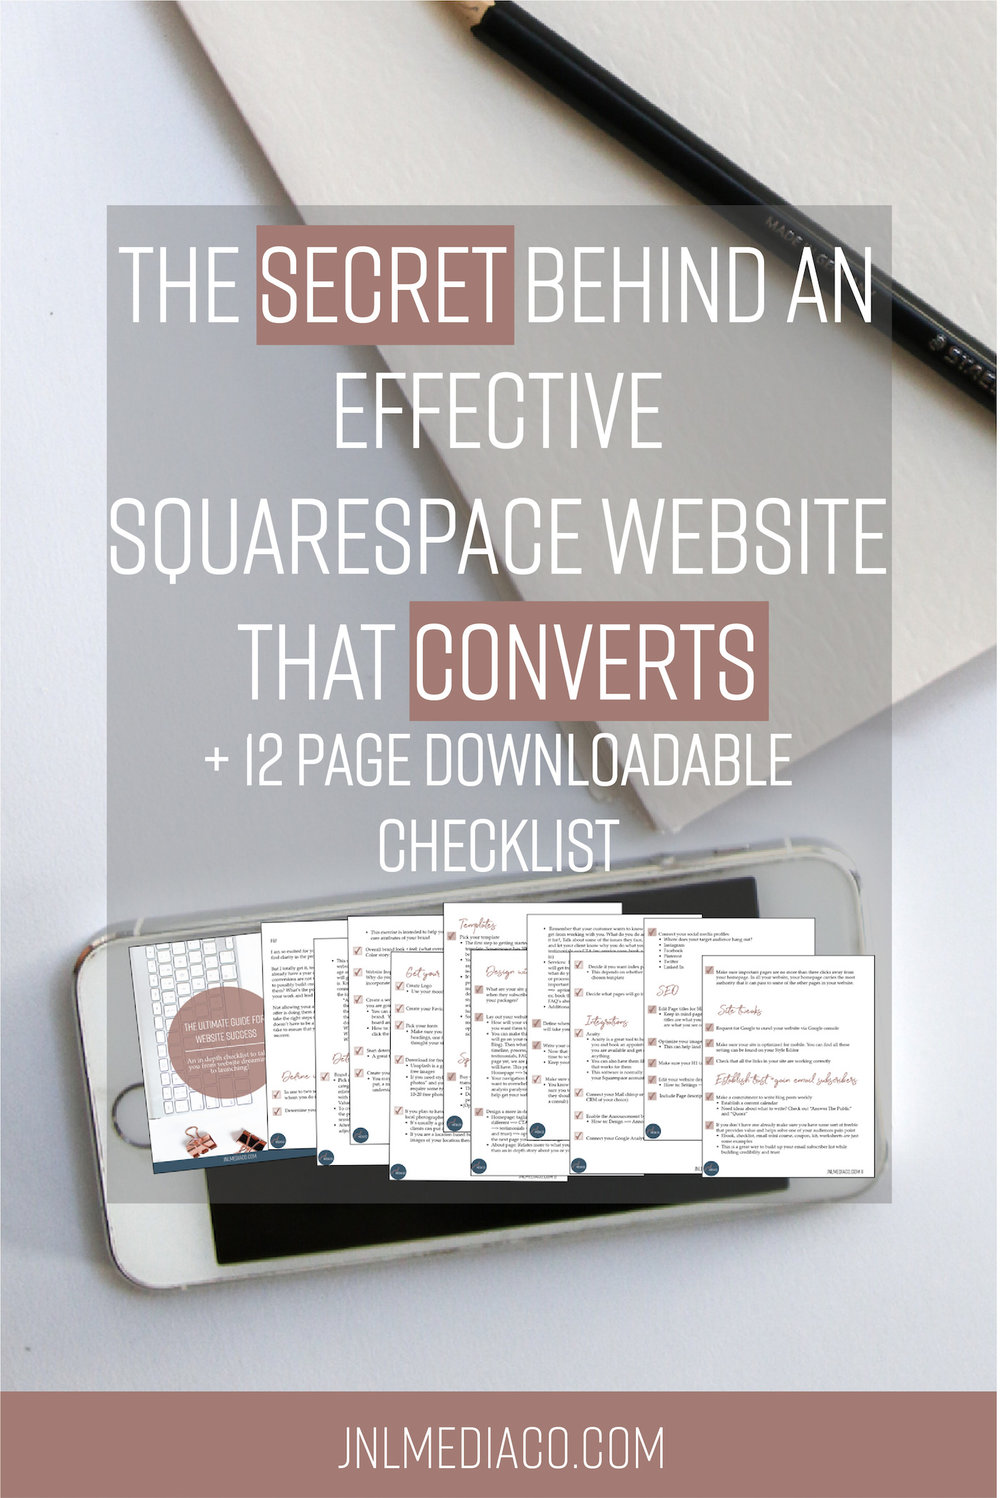 The title of this post relates specifically to Squarespace websites BUT truth is that anyone with a website will find this post helpful! Whether you have (or are considering) a Squarespace, Wordpress, Weebly, Wix, or Godaddy website, it's important to have this down. #squarespacetips